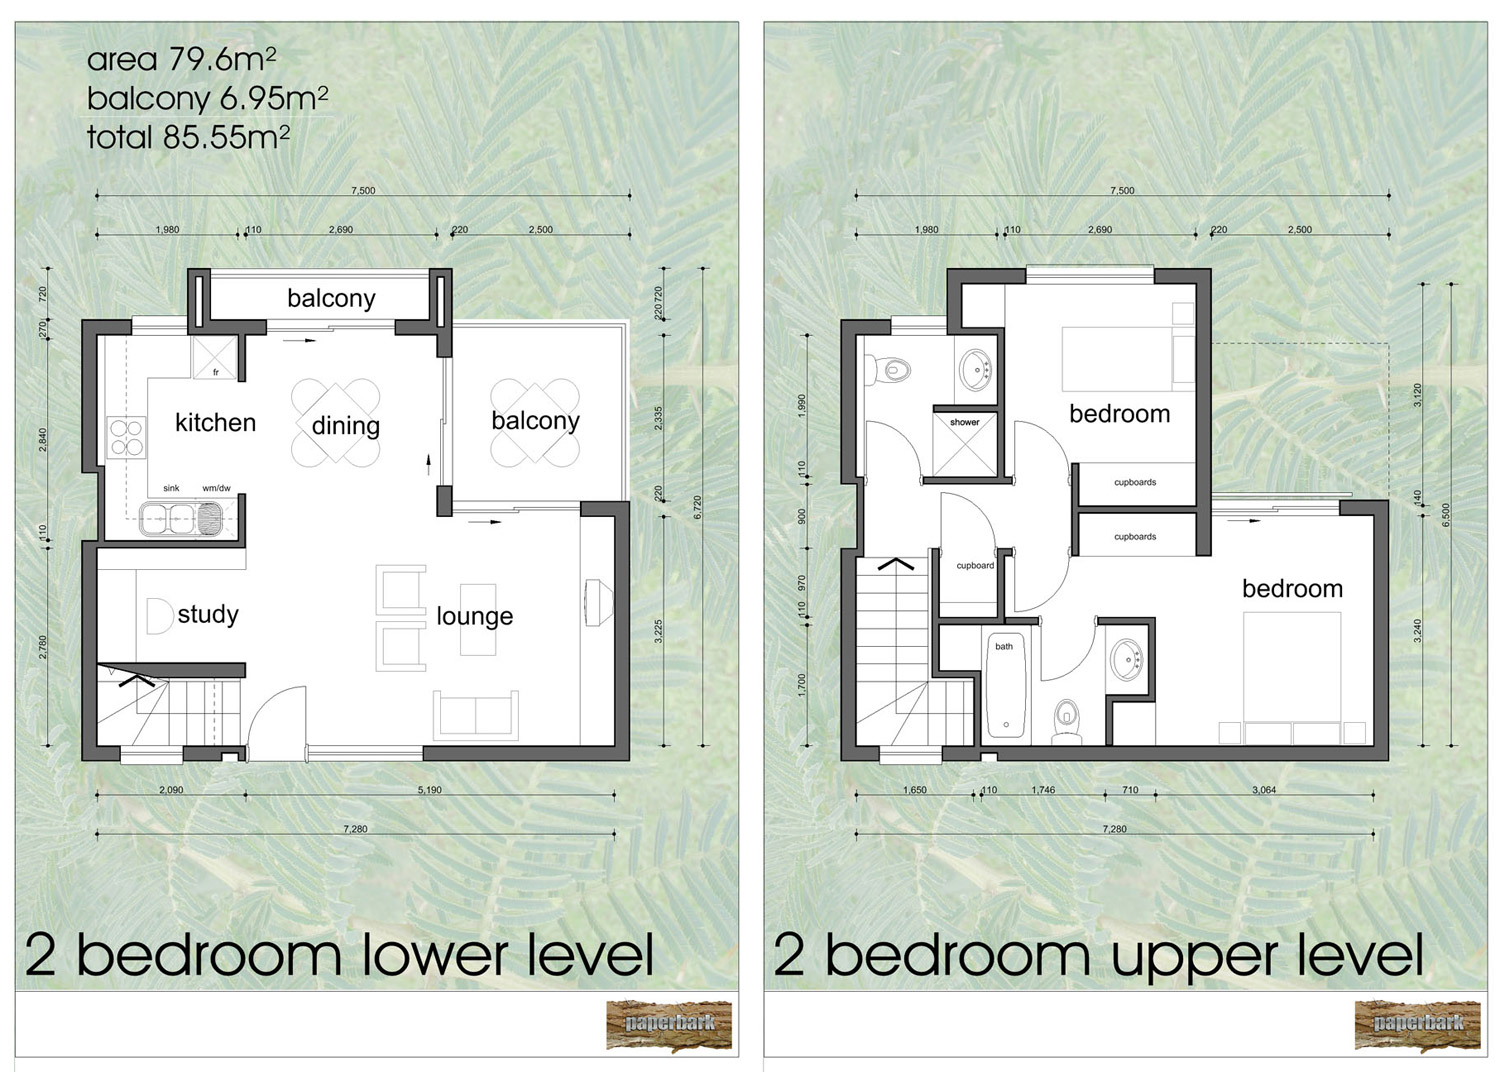 Paperbark unit plans for 4 bedroom house with loft